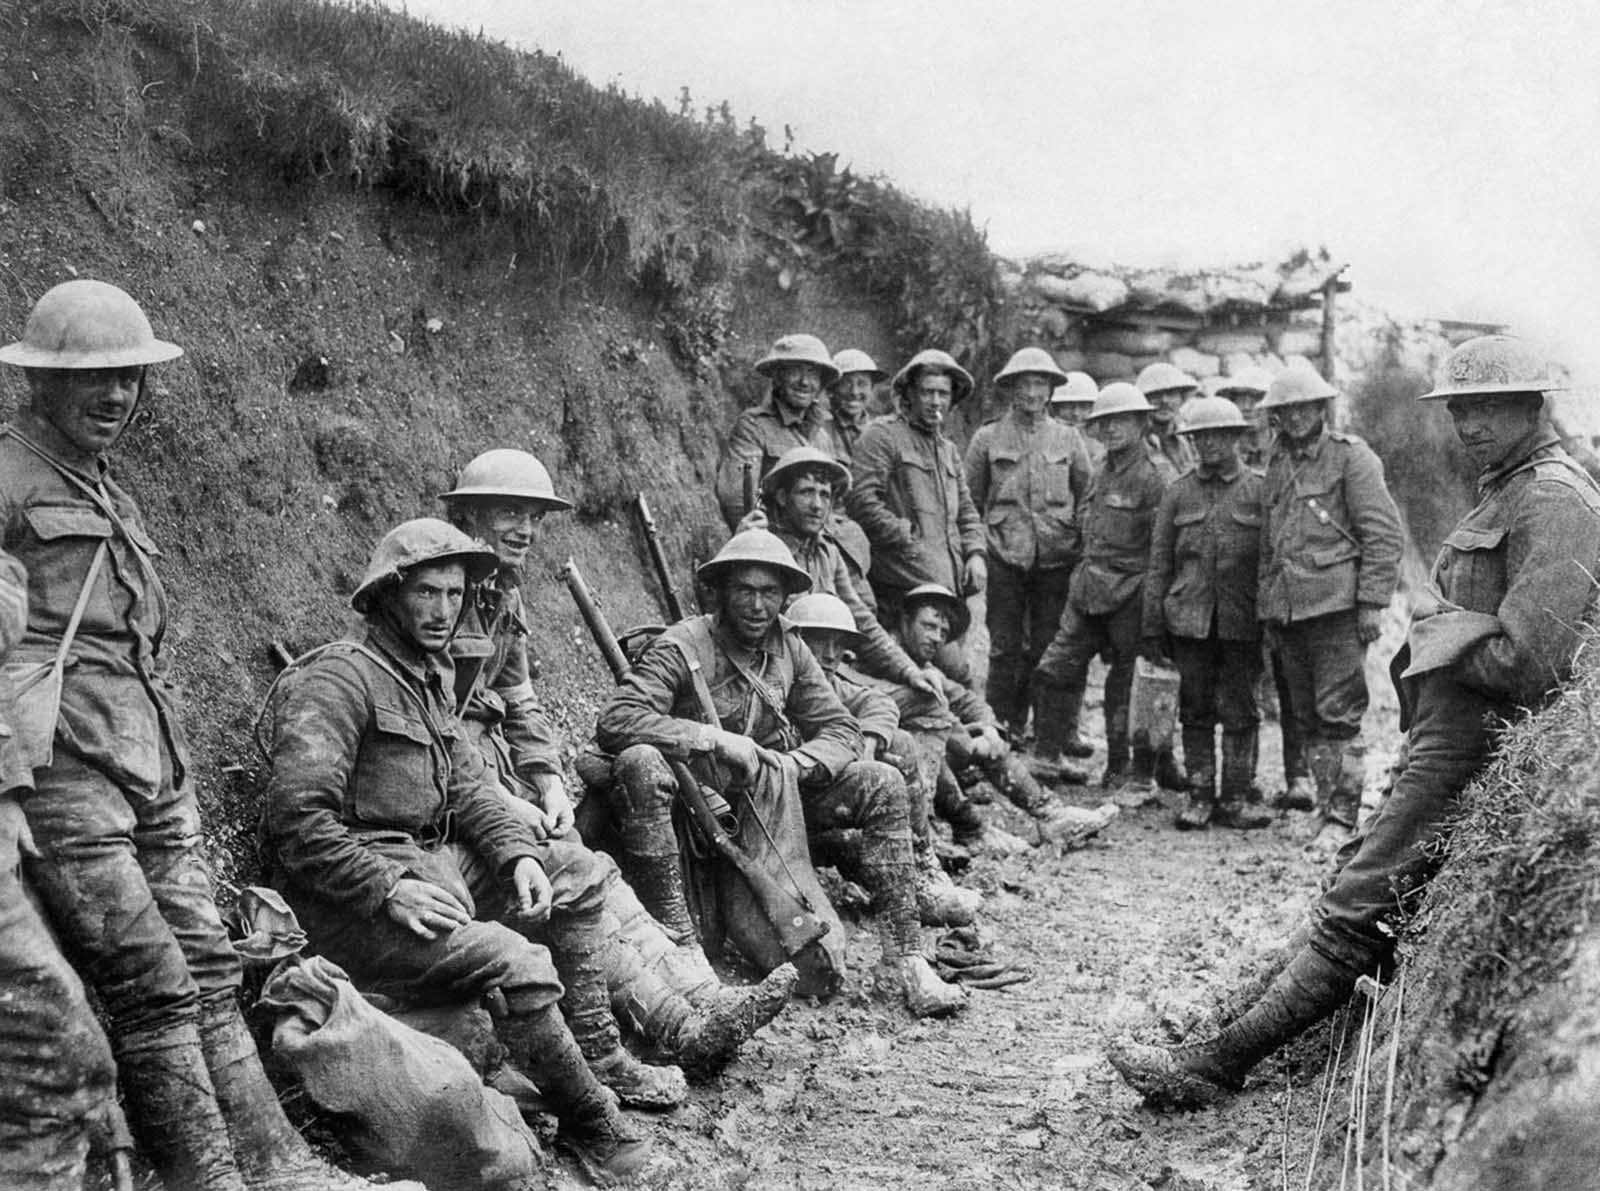 Men of the Royal Irish Rifles rest during the opening hours of the Battle of the Somme. July 1, 1916.